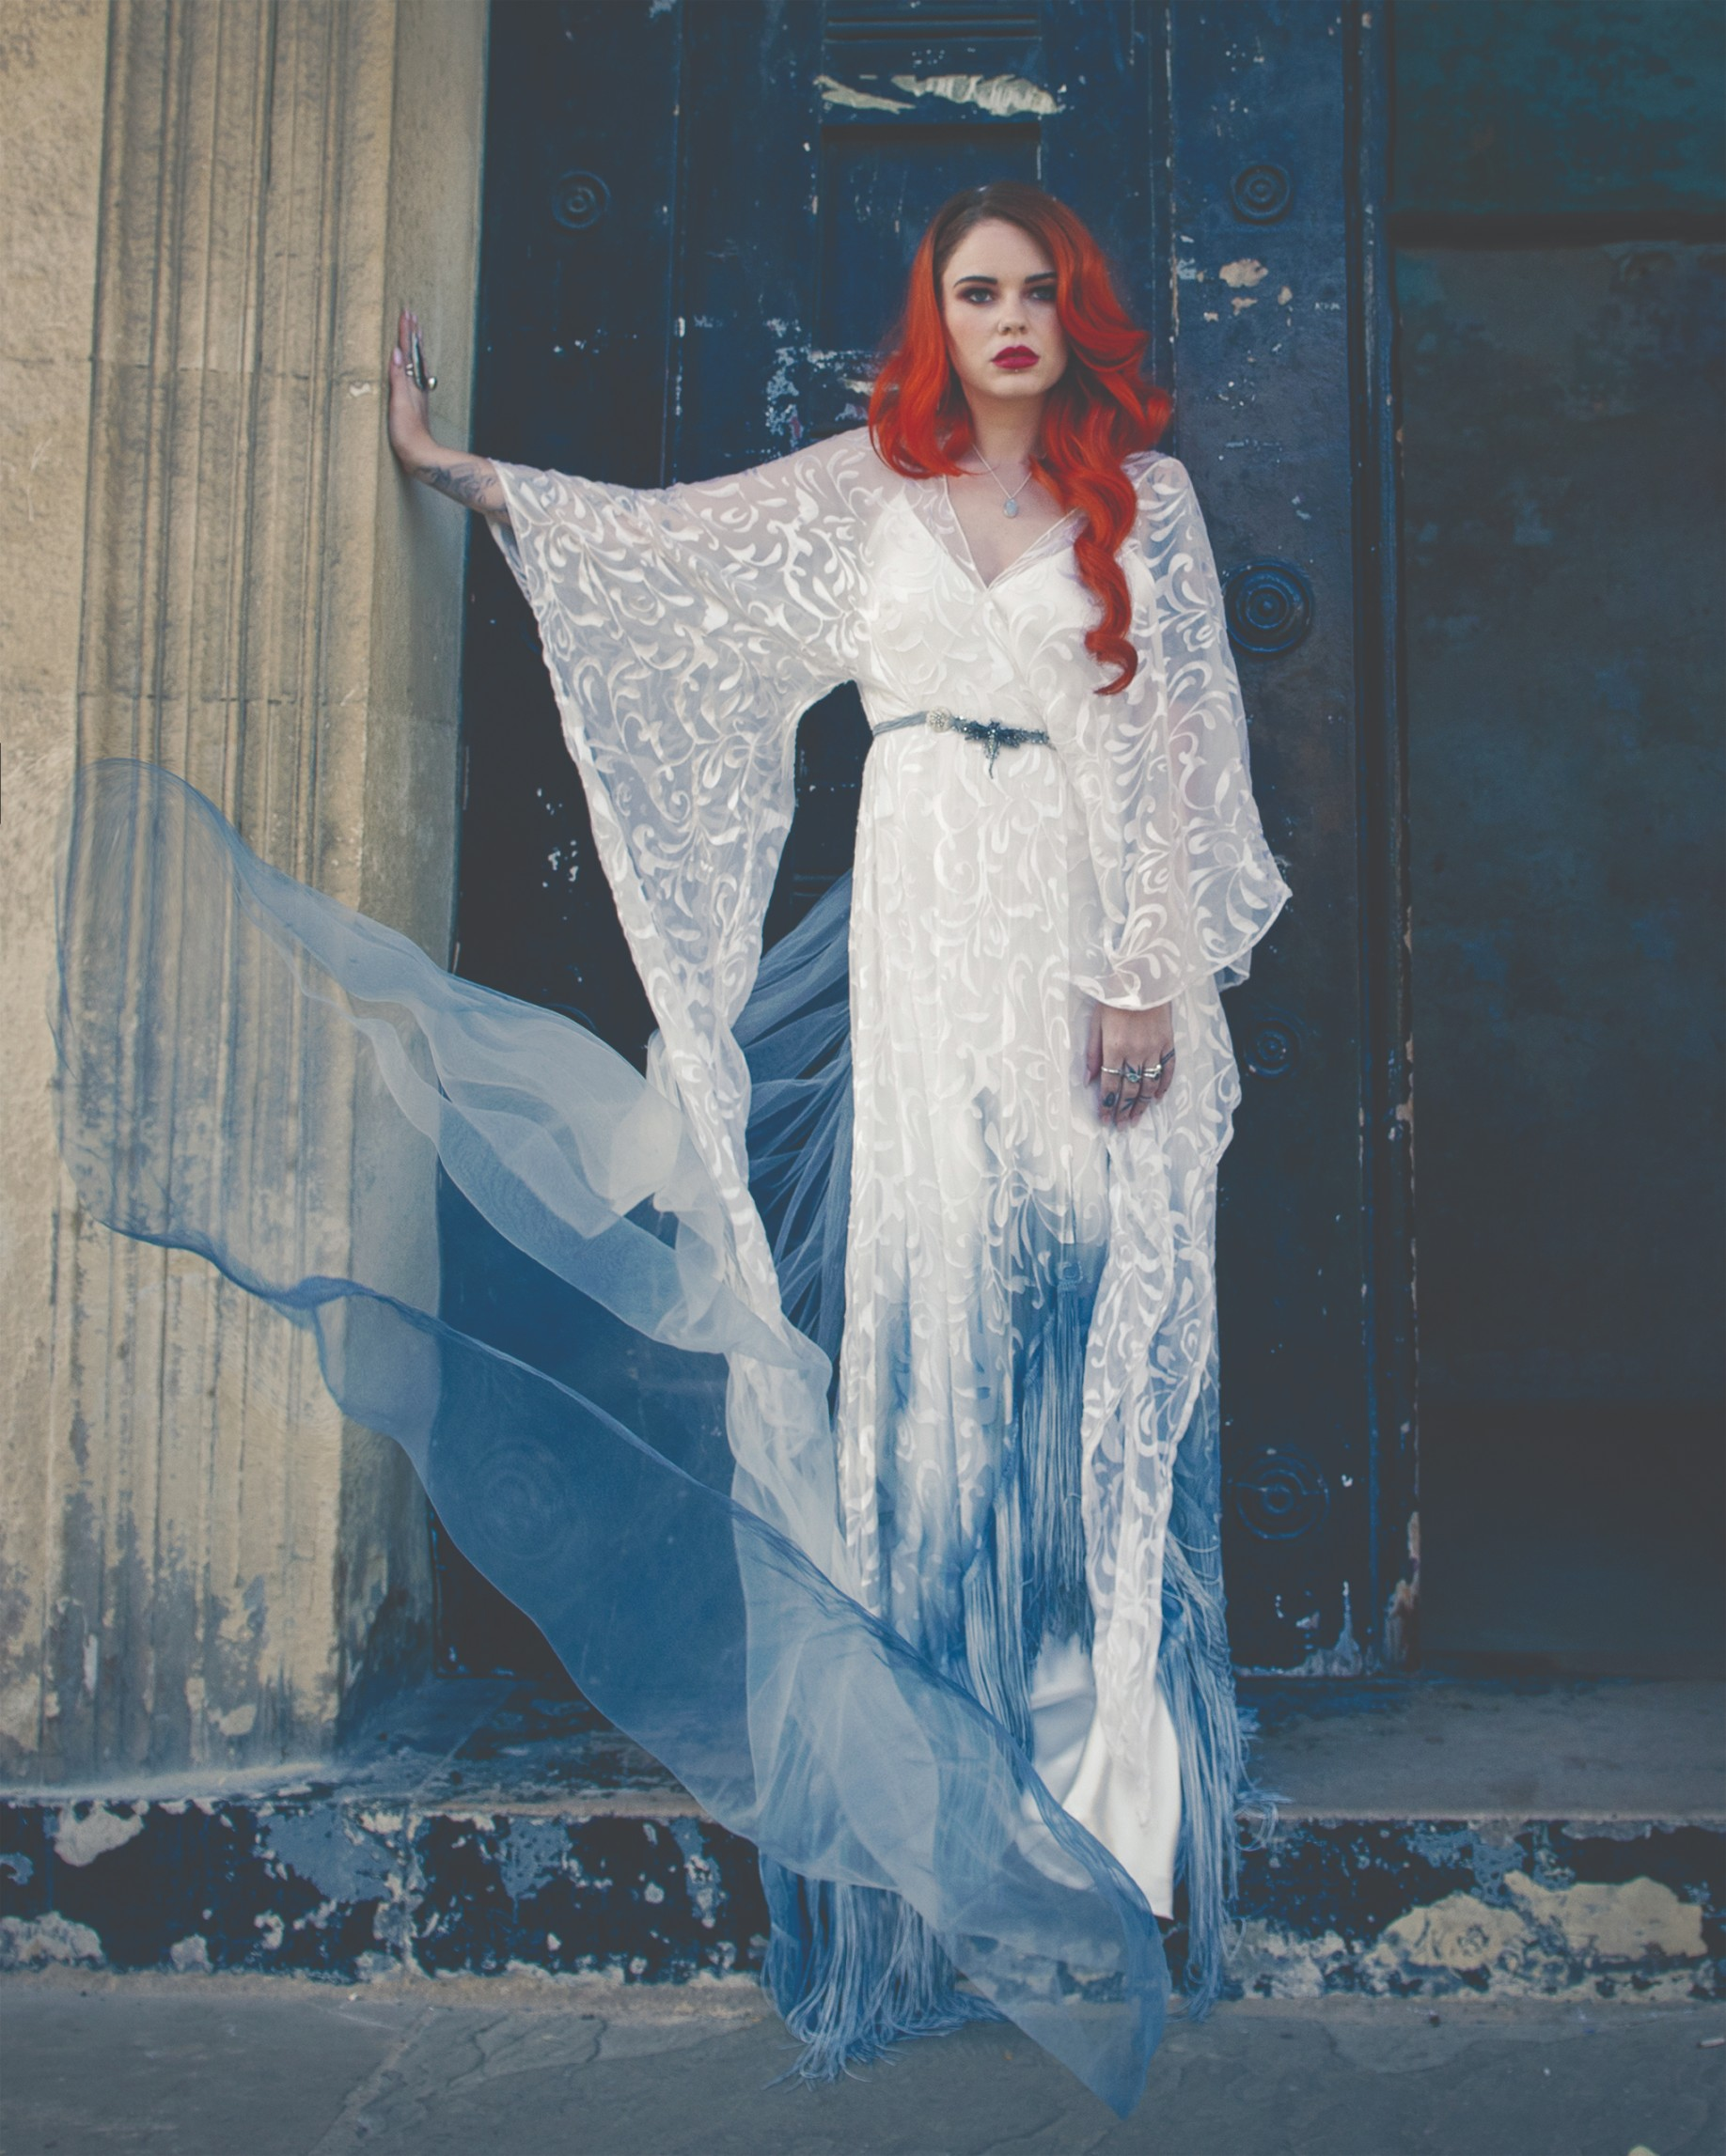 bexbrides- ombre wedding dress- alternative wedding dress- unique wedding dress- uk wedding dress maker- bohemian wedding dresses- flared sleeve wedding dress